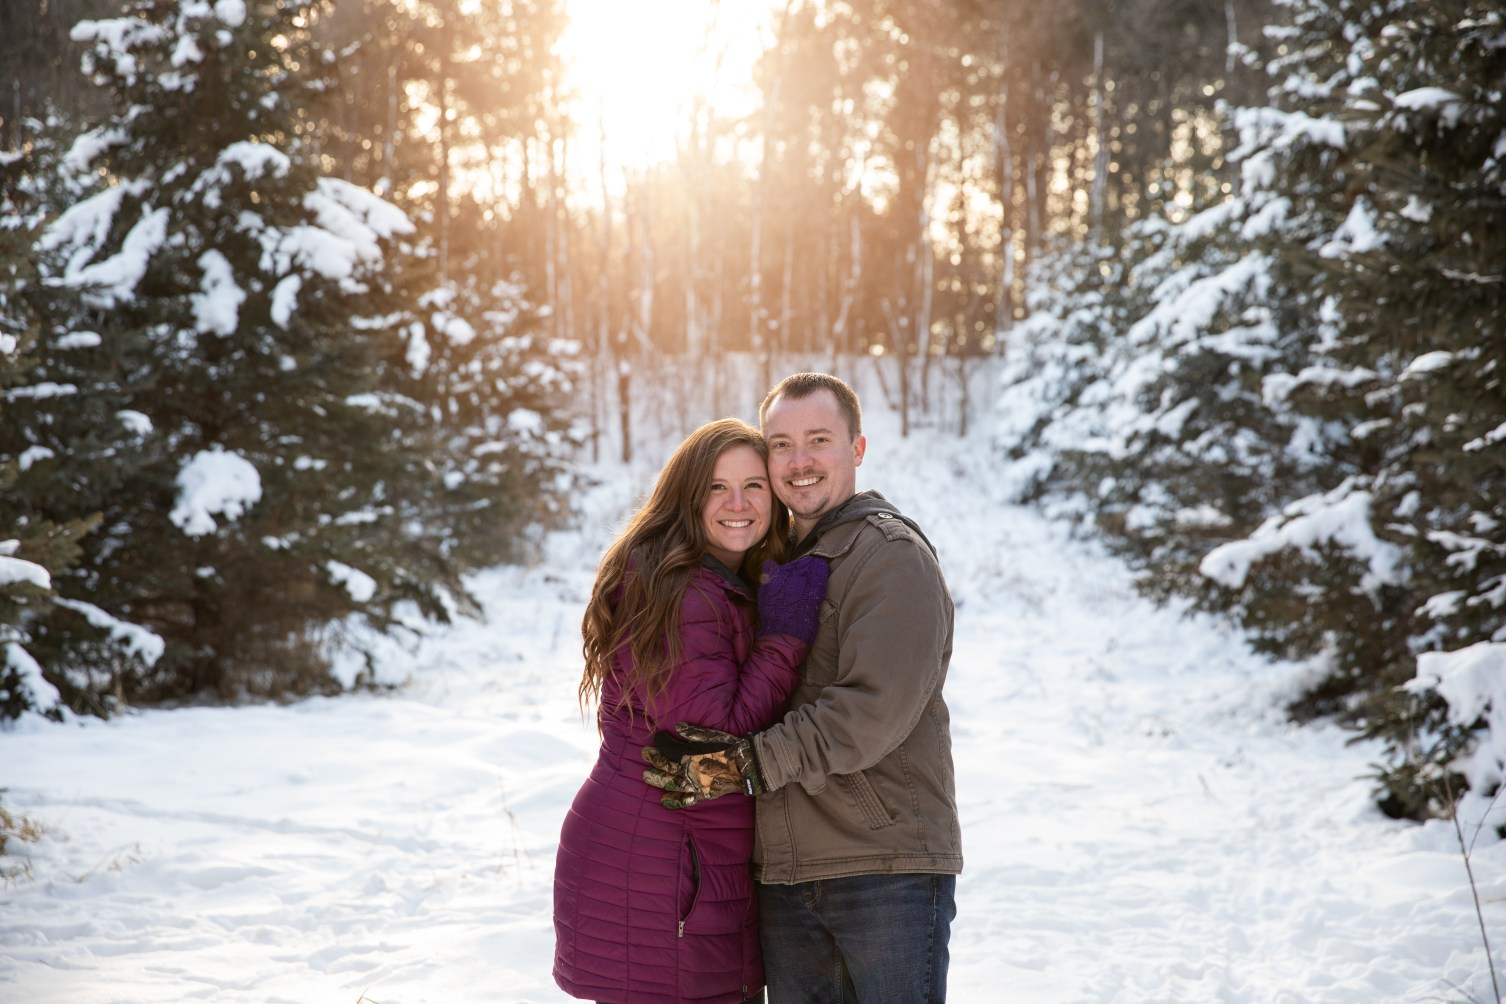 Winter sunset couples portrait in a family photo session by MN Family Photographer Nicki Joachim Photography of Owatonna, Minnesota